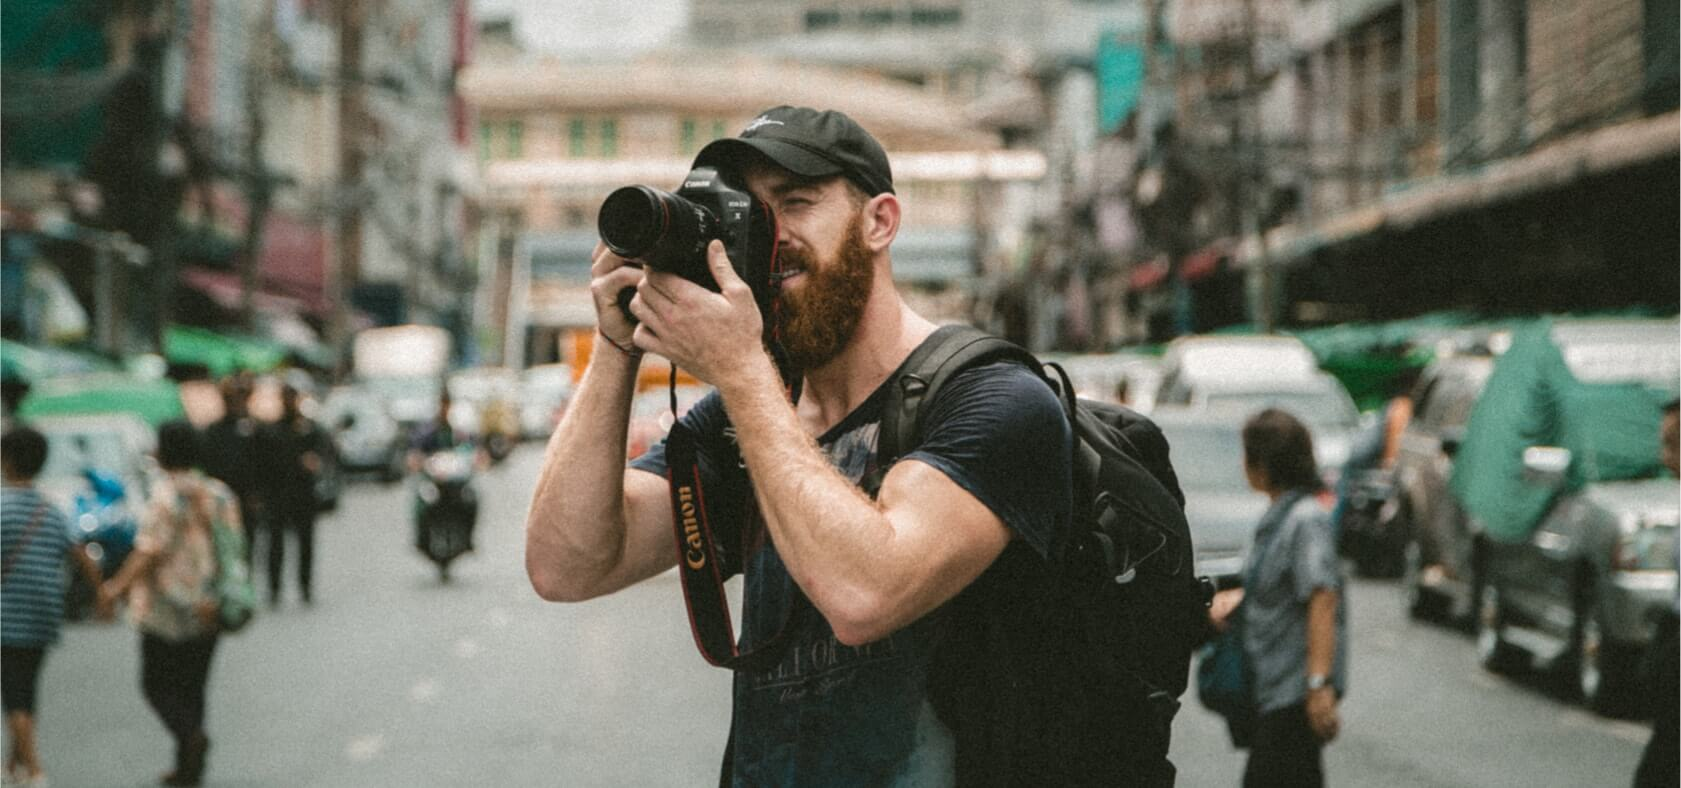 How to Start and Grow a Photography Business - Start Shooting Professionally